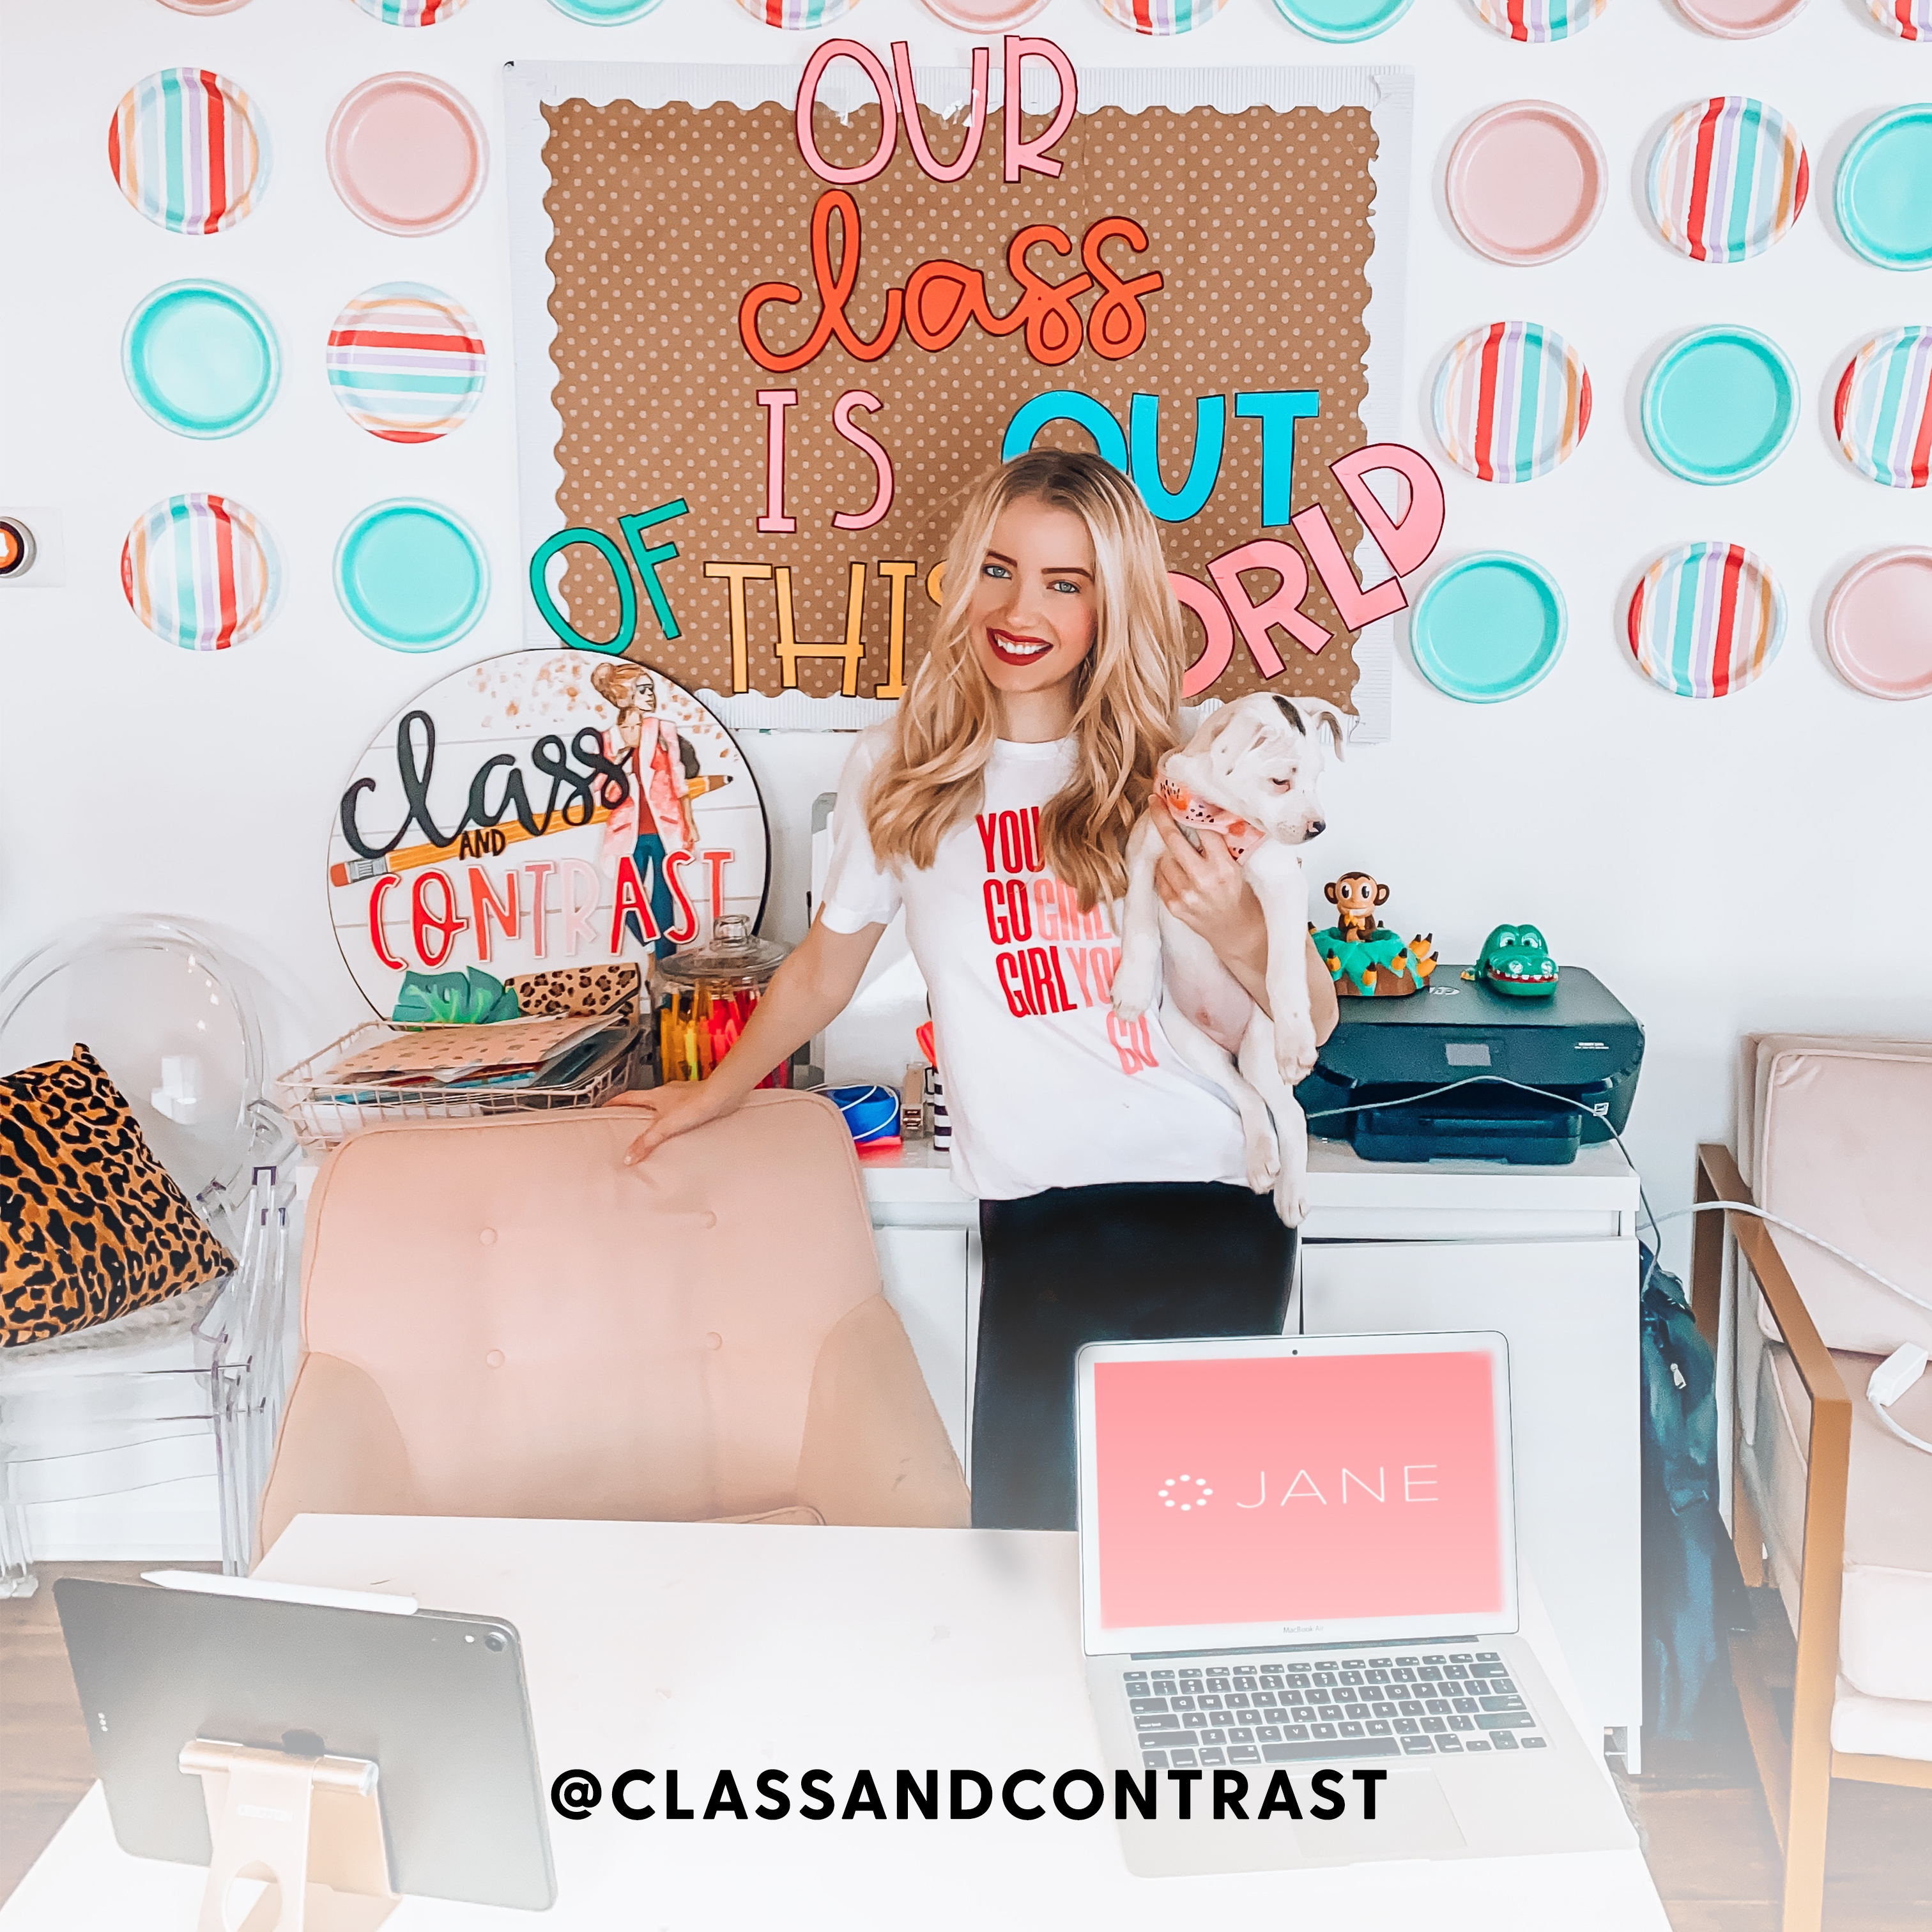 Instagram Influencer @classandcontrast